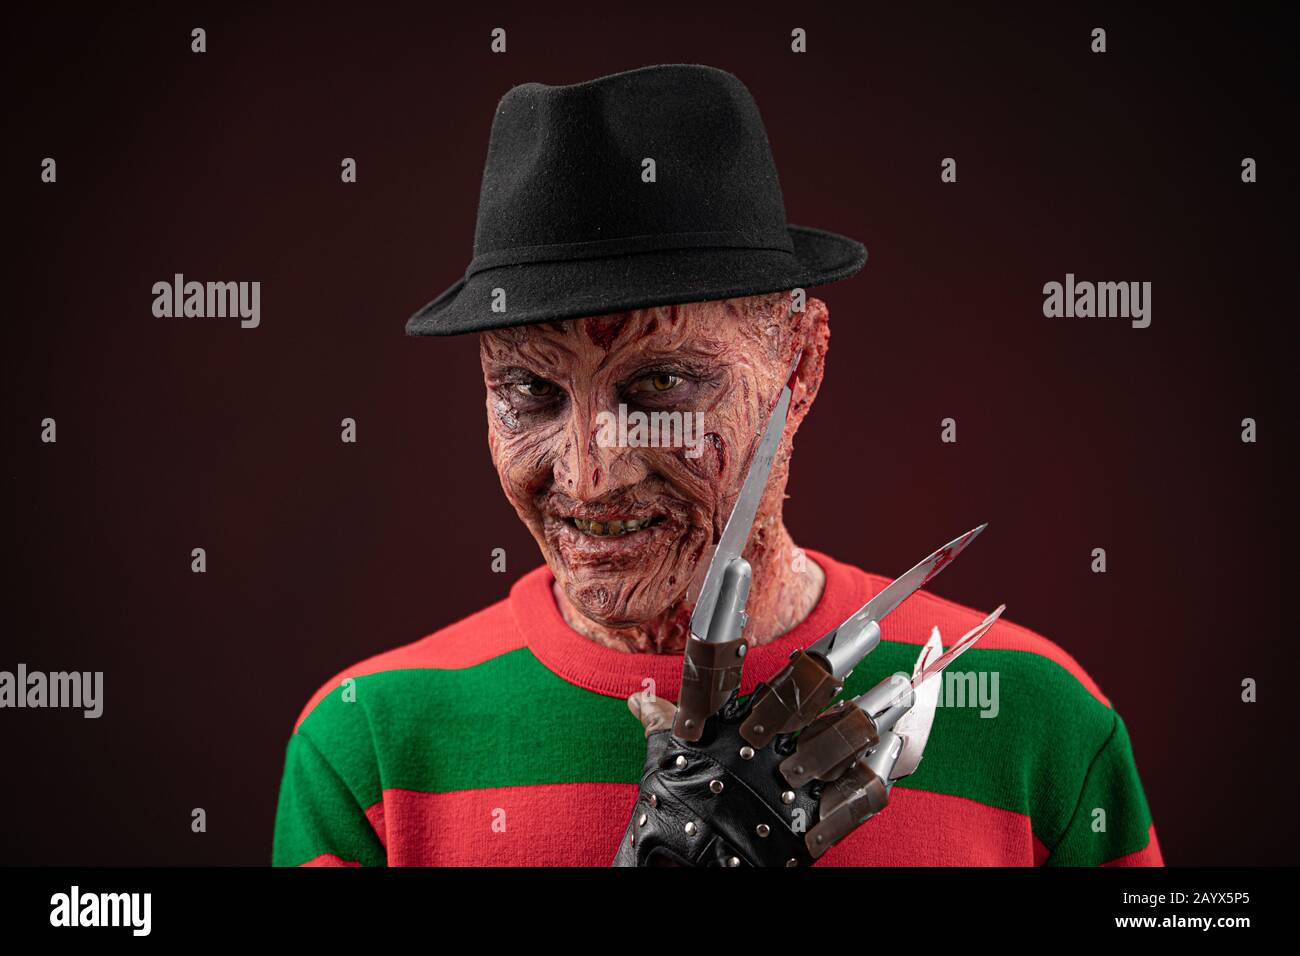 portrait of a man with a scary face and metal claws. Grimm hero for a horror movie. Freddy Krueger. 06 February 2020 Ukraine, Kyiv. make-up Stock Photo